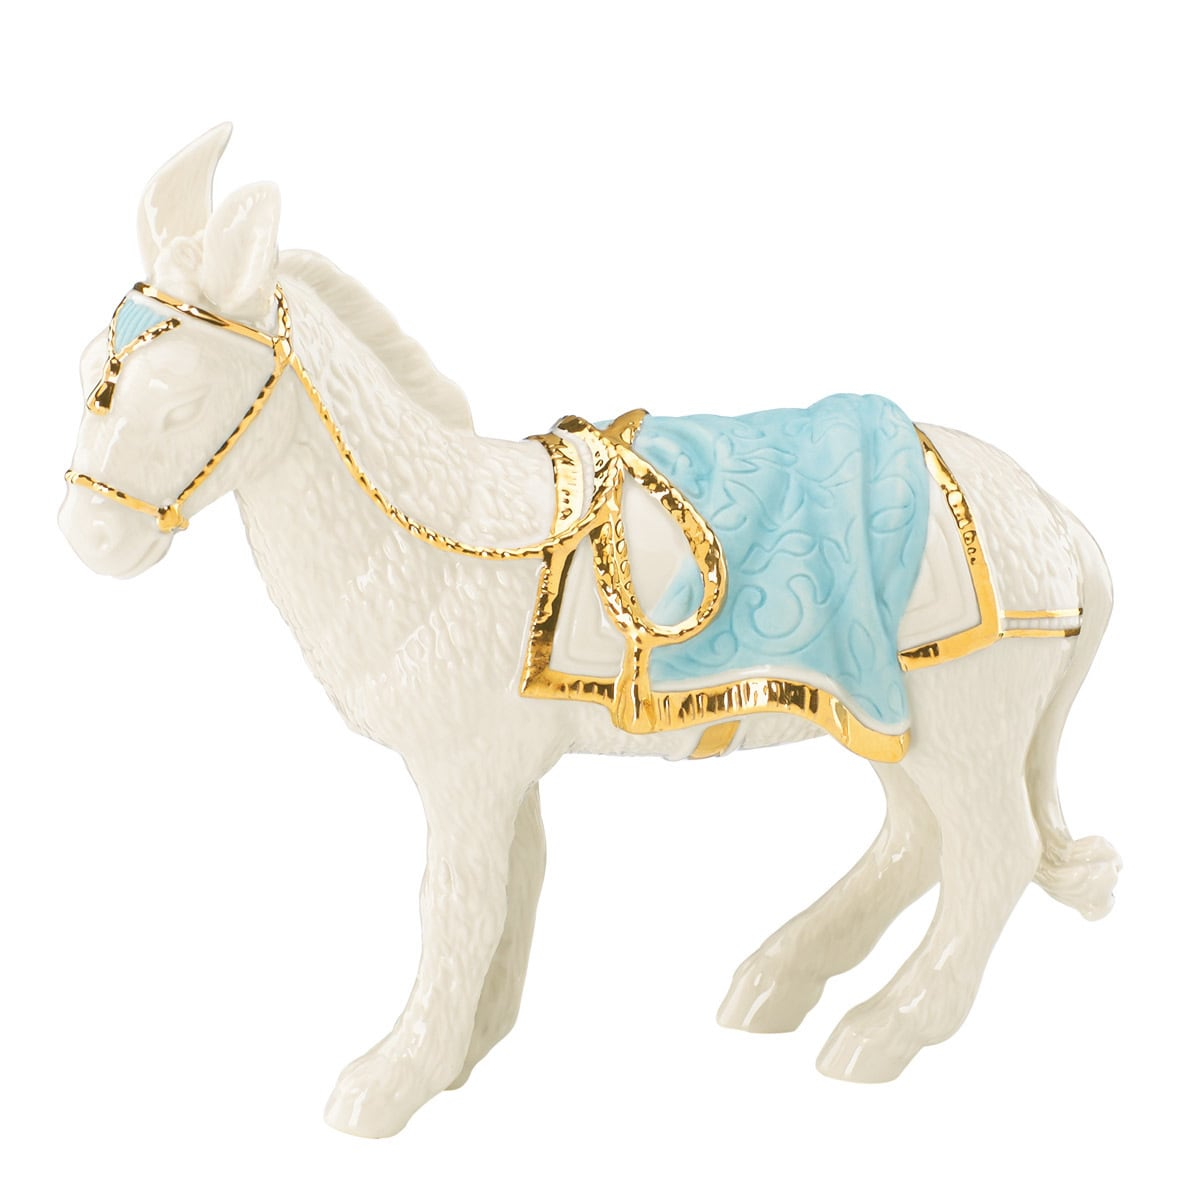 Lenox First Blessings Donkey Figurine (Ivory), White (Gold)